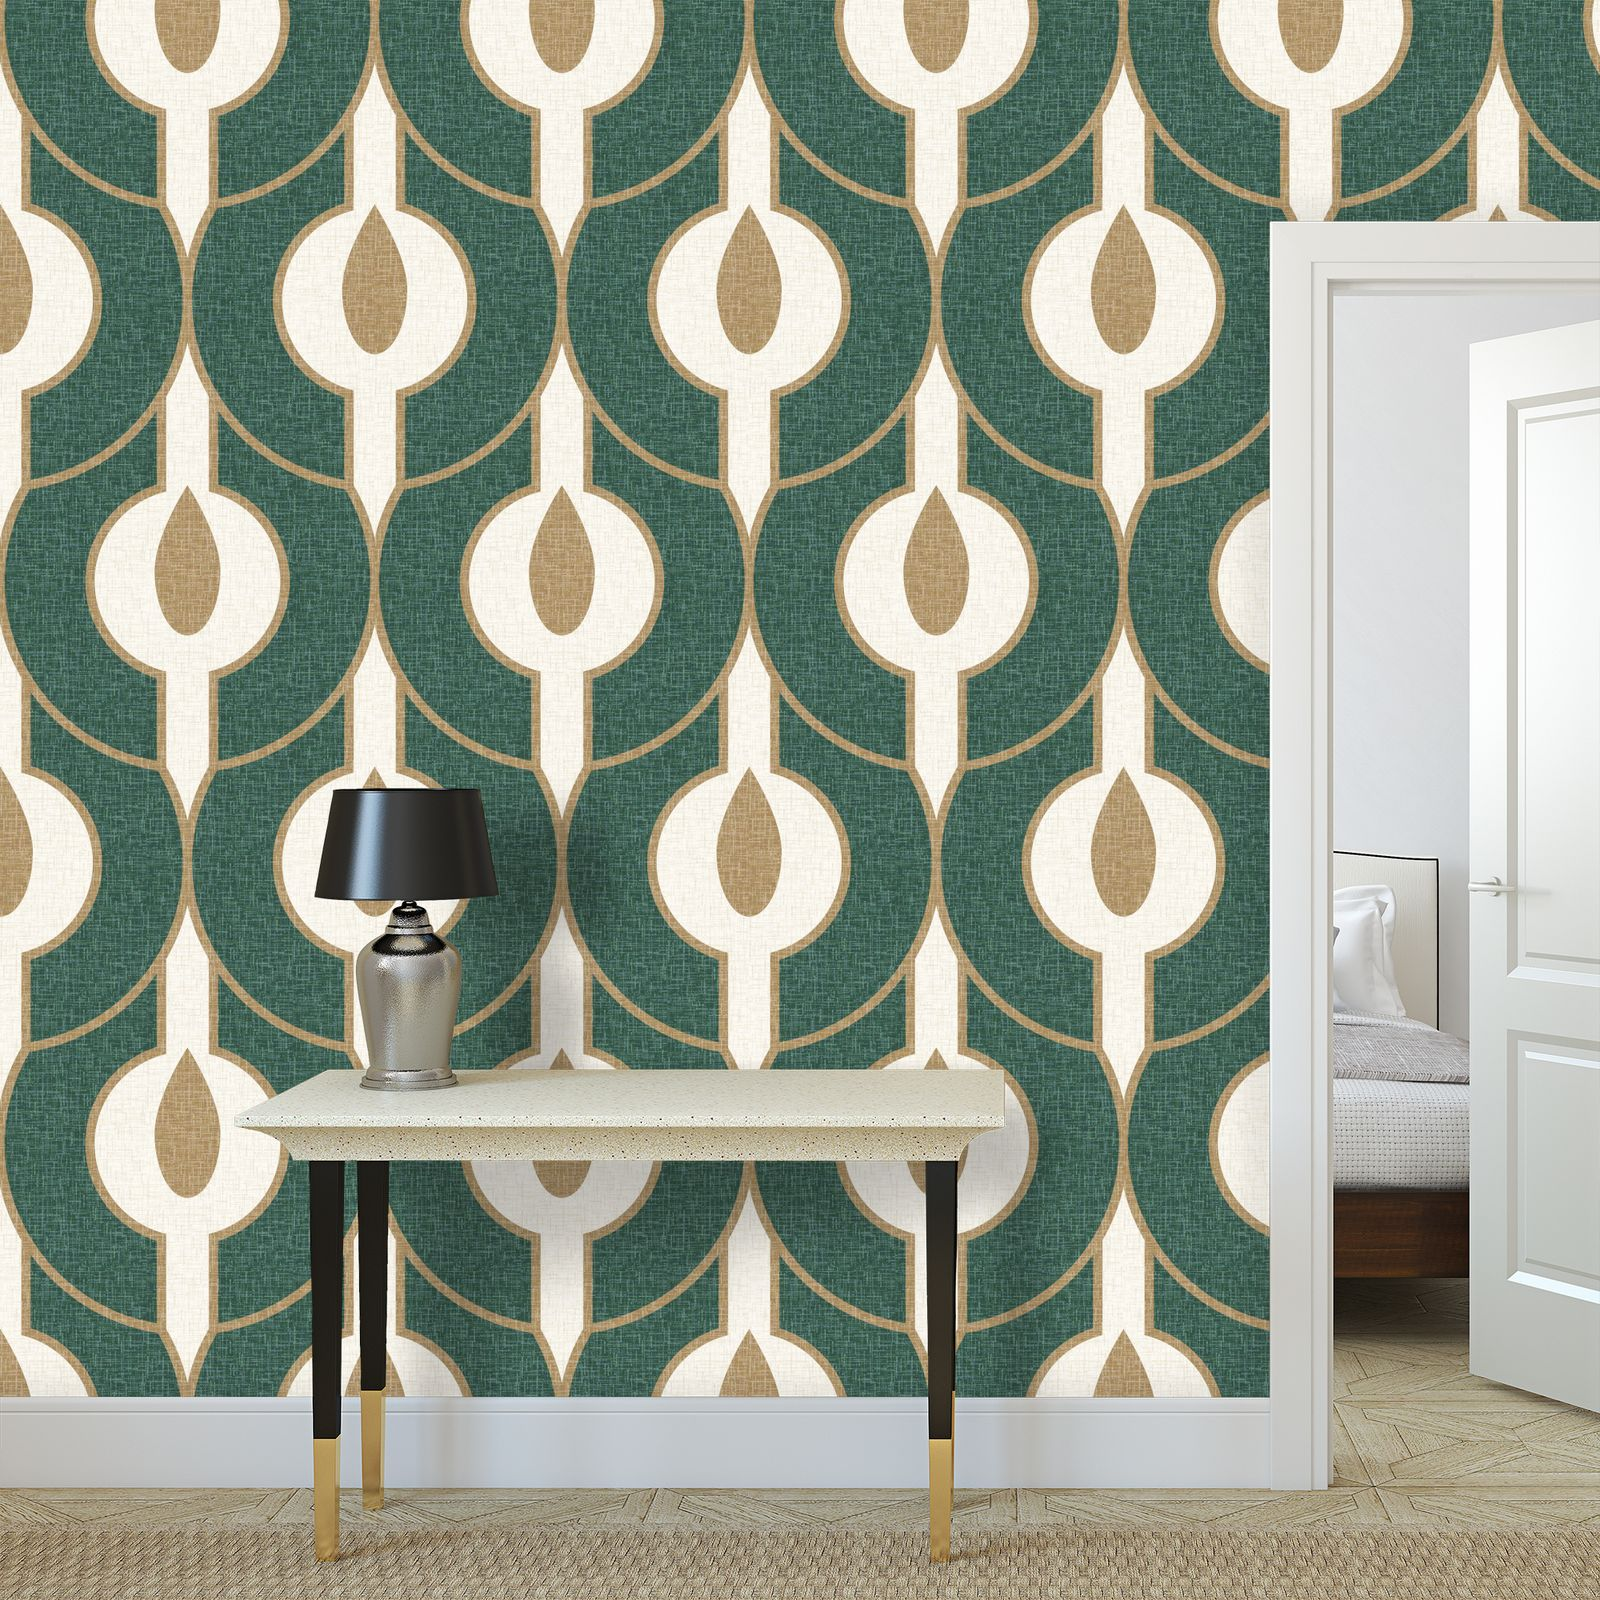 Power of nature - Wallpaper Rolls - green, geometric, abstract, natural design